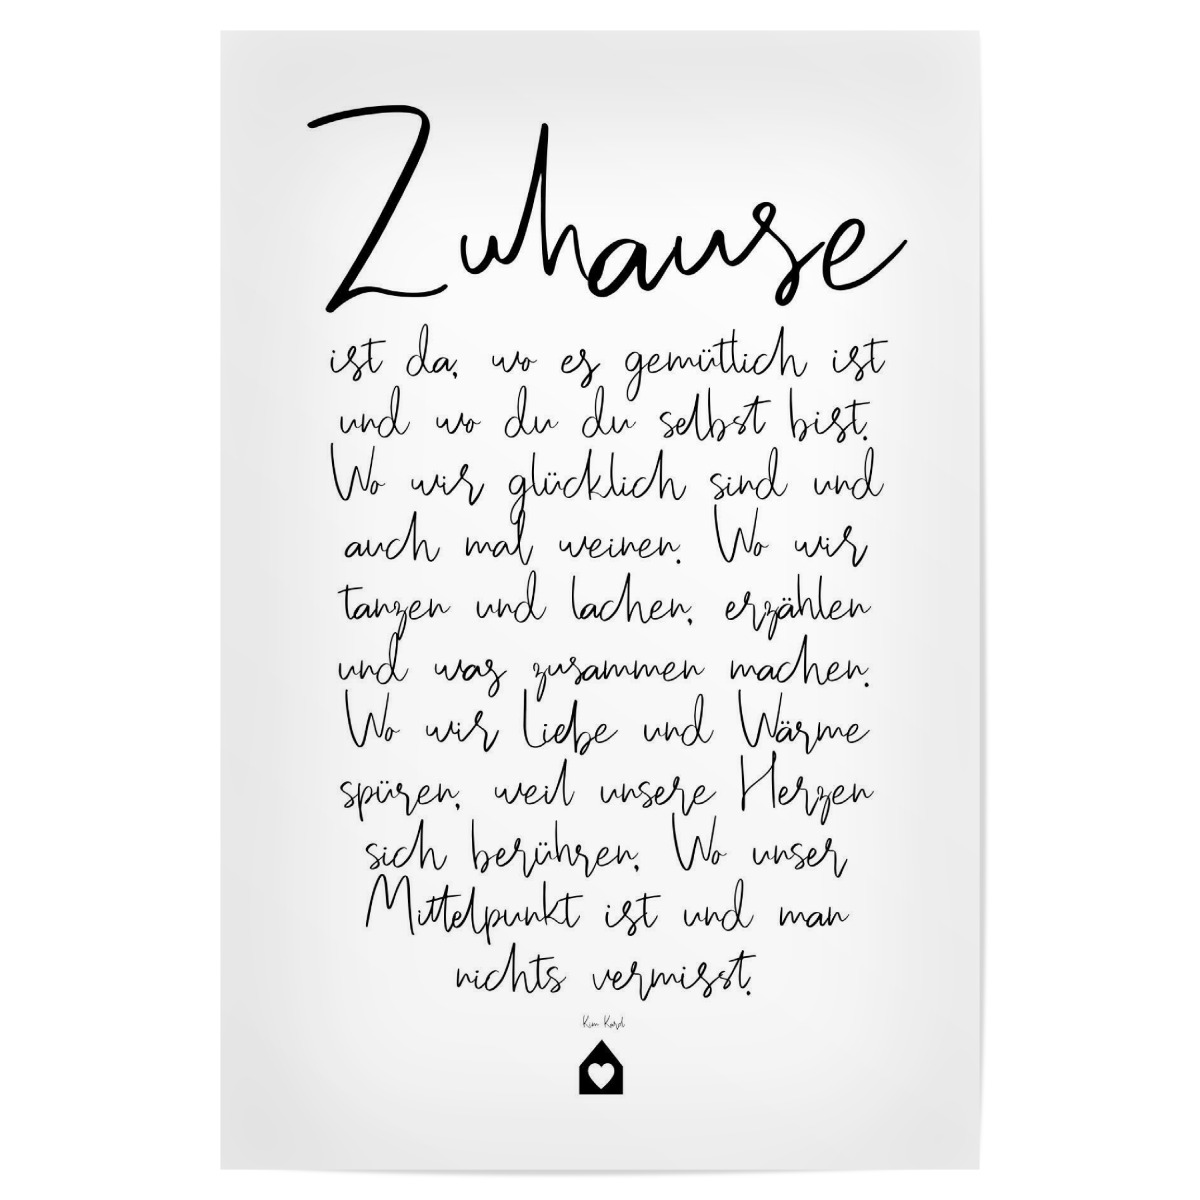 Purchase The Zuhause Ein Gedicht As A Poster At Artboxone